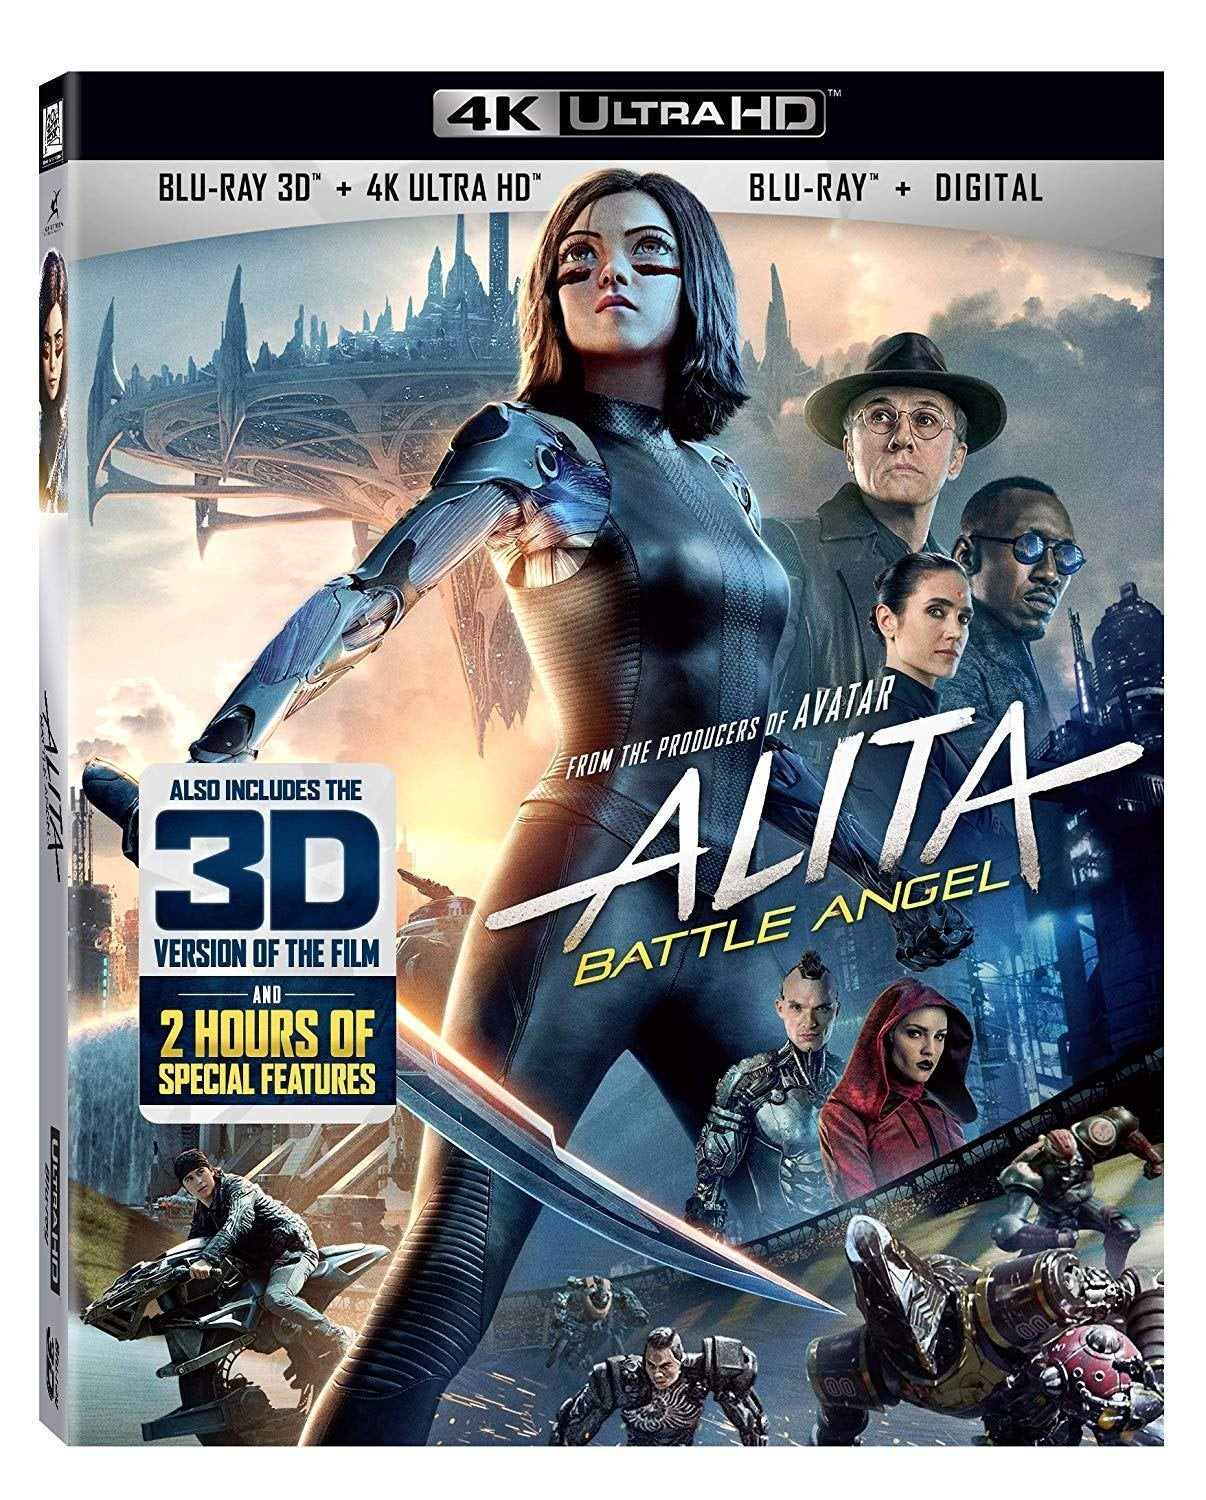 alita battle angel 4k ultra hd blu ray cover